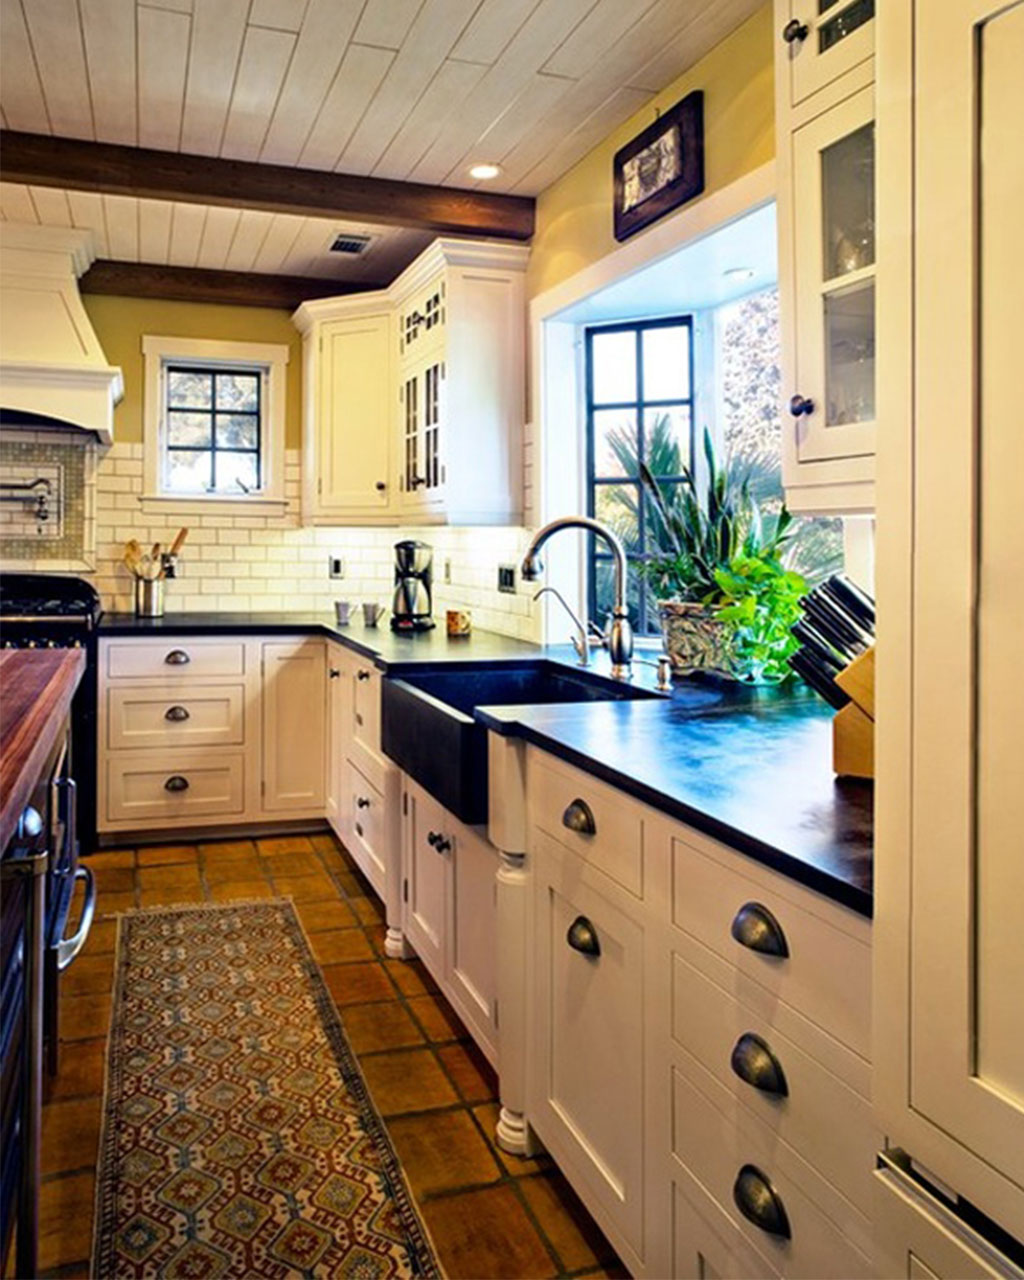 Kitchen trends 2015 loretta j willis designer for New kitchen designs 2015